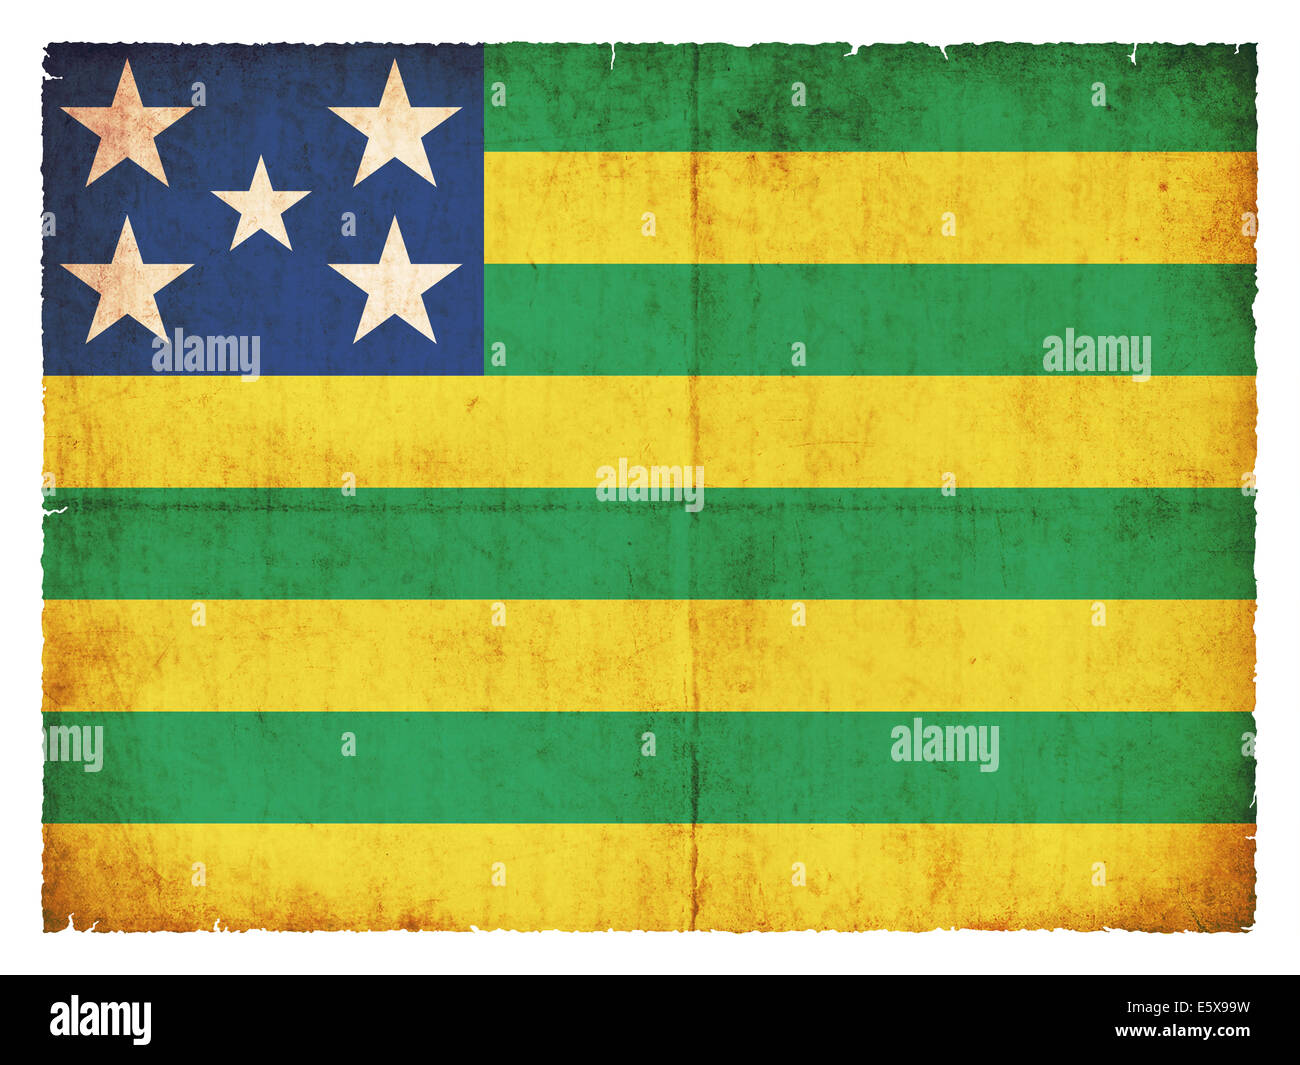 Flag of the Brazilian state Goias created in grunge style - Stock Image